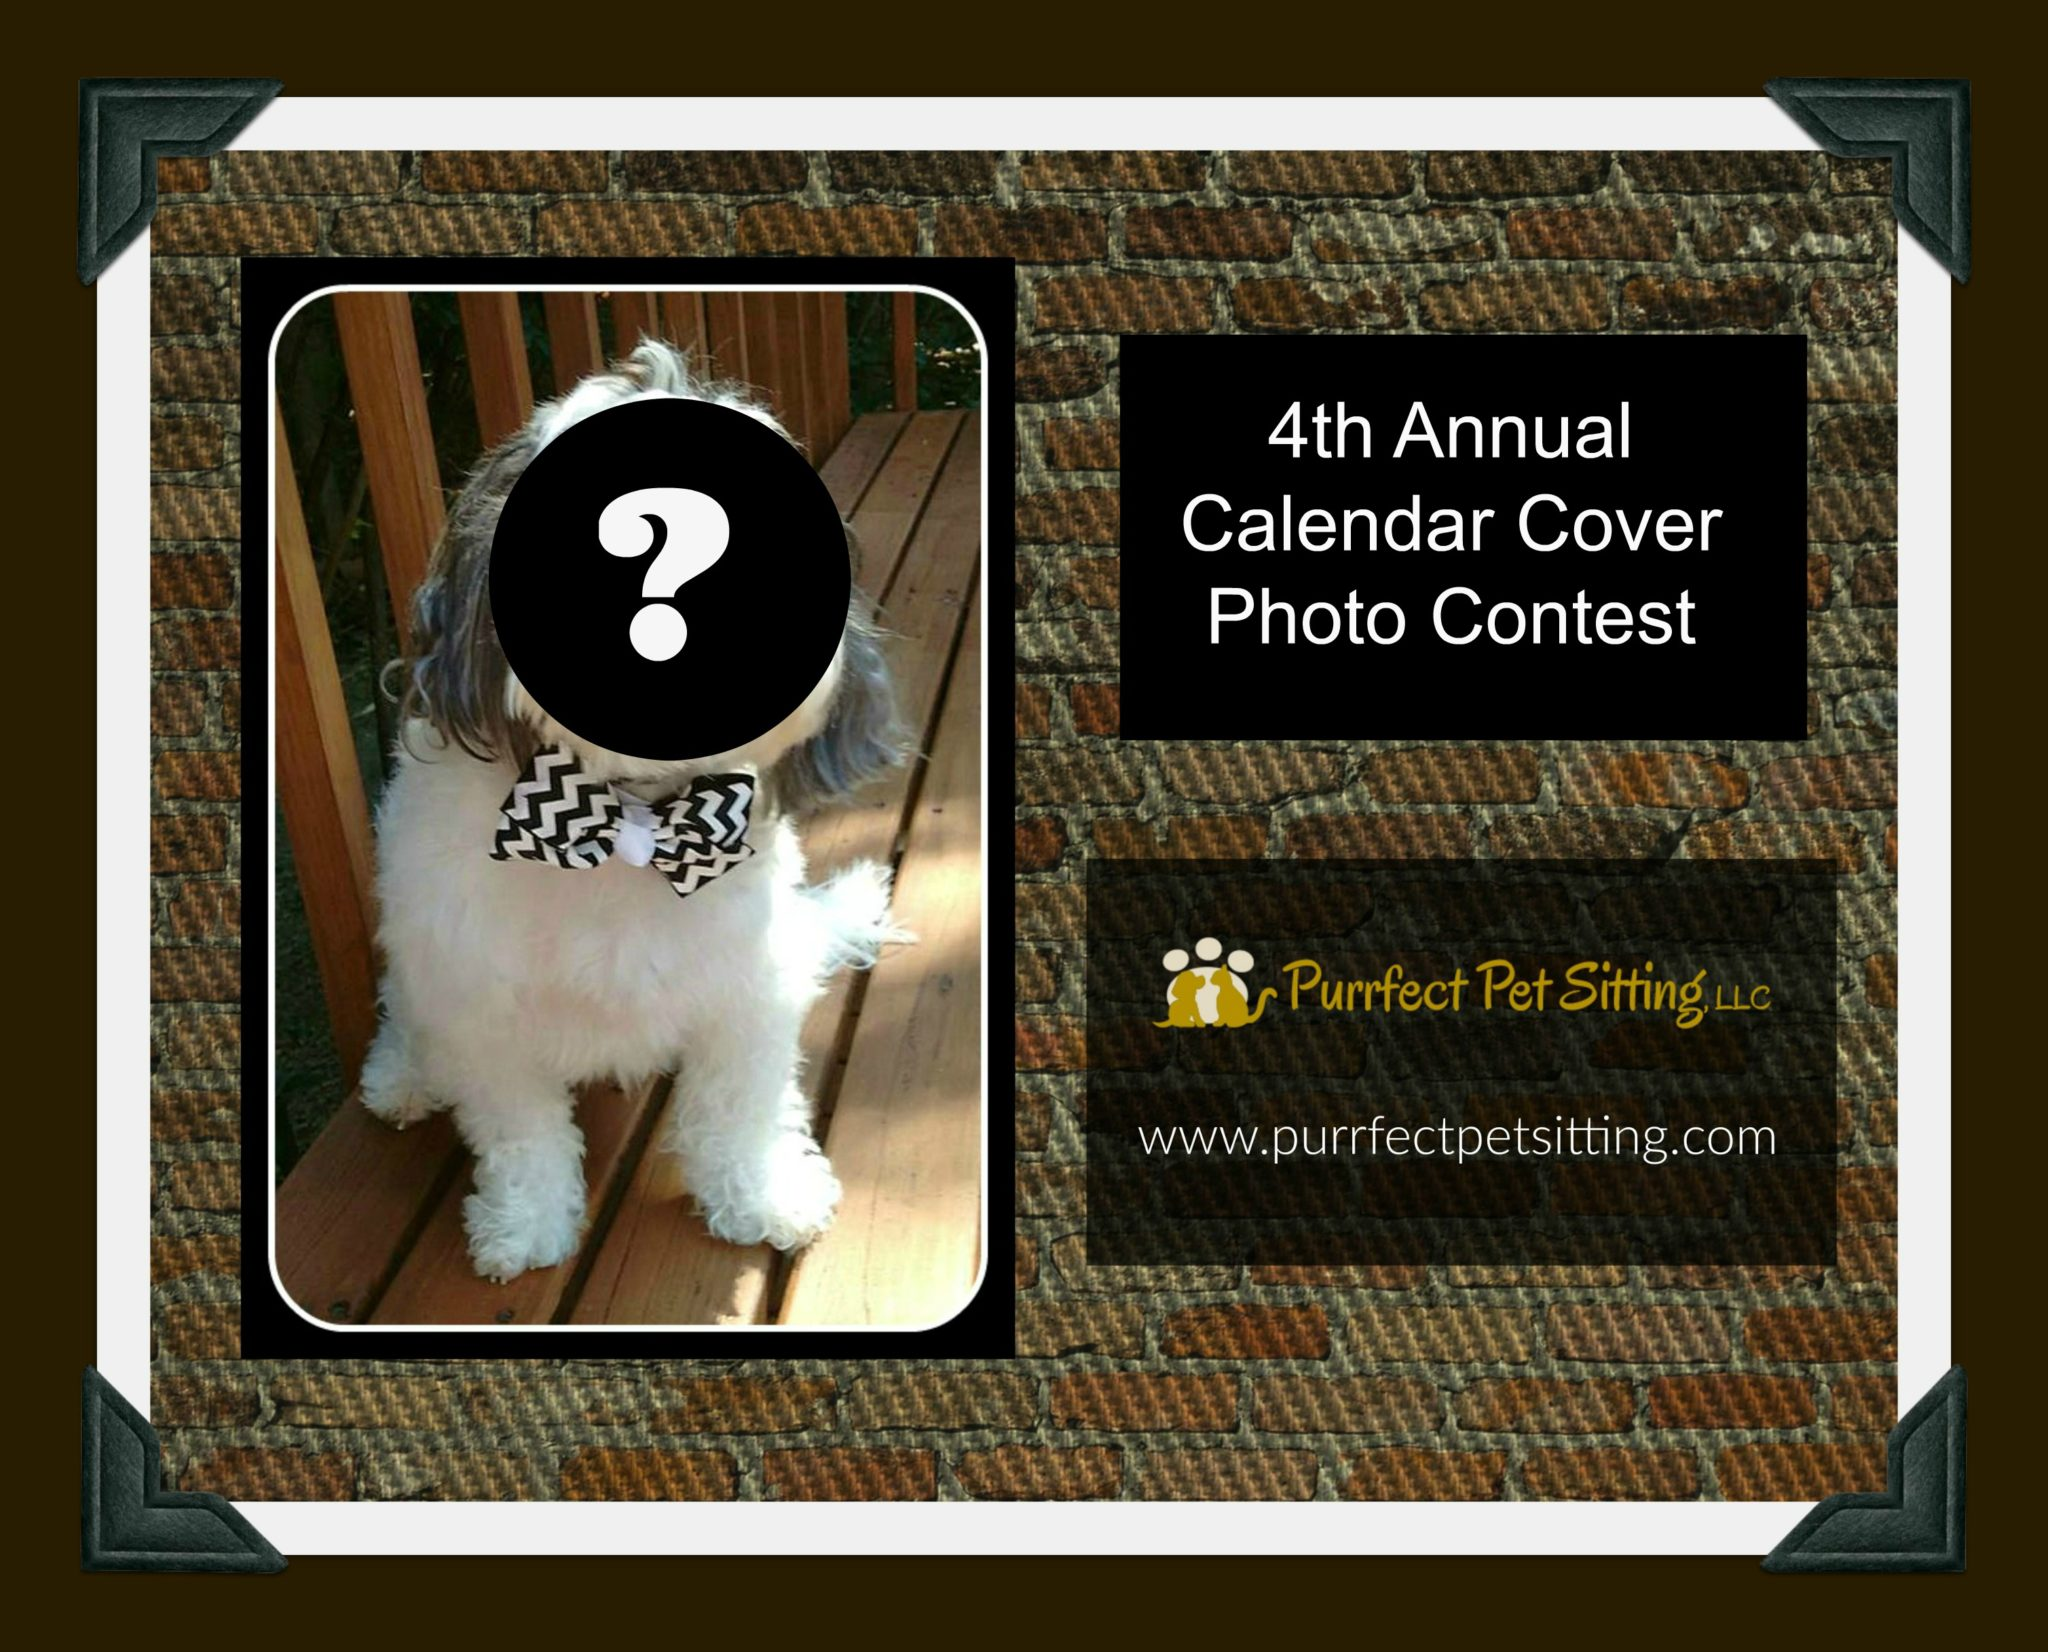 Calendar Photography Submissions : Th annual calendar cover photo contest purrfect pet